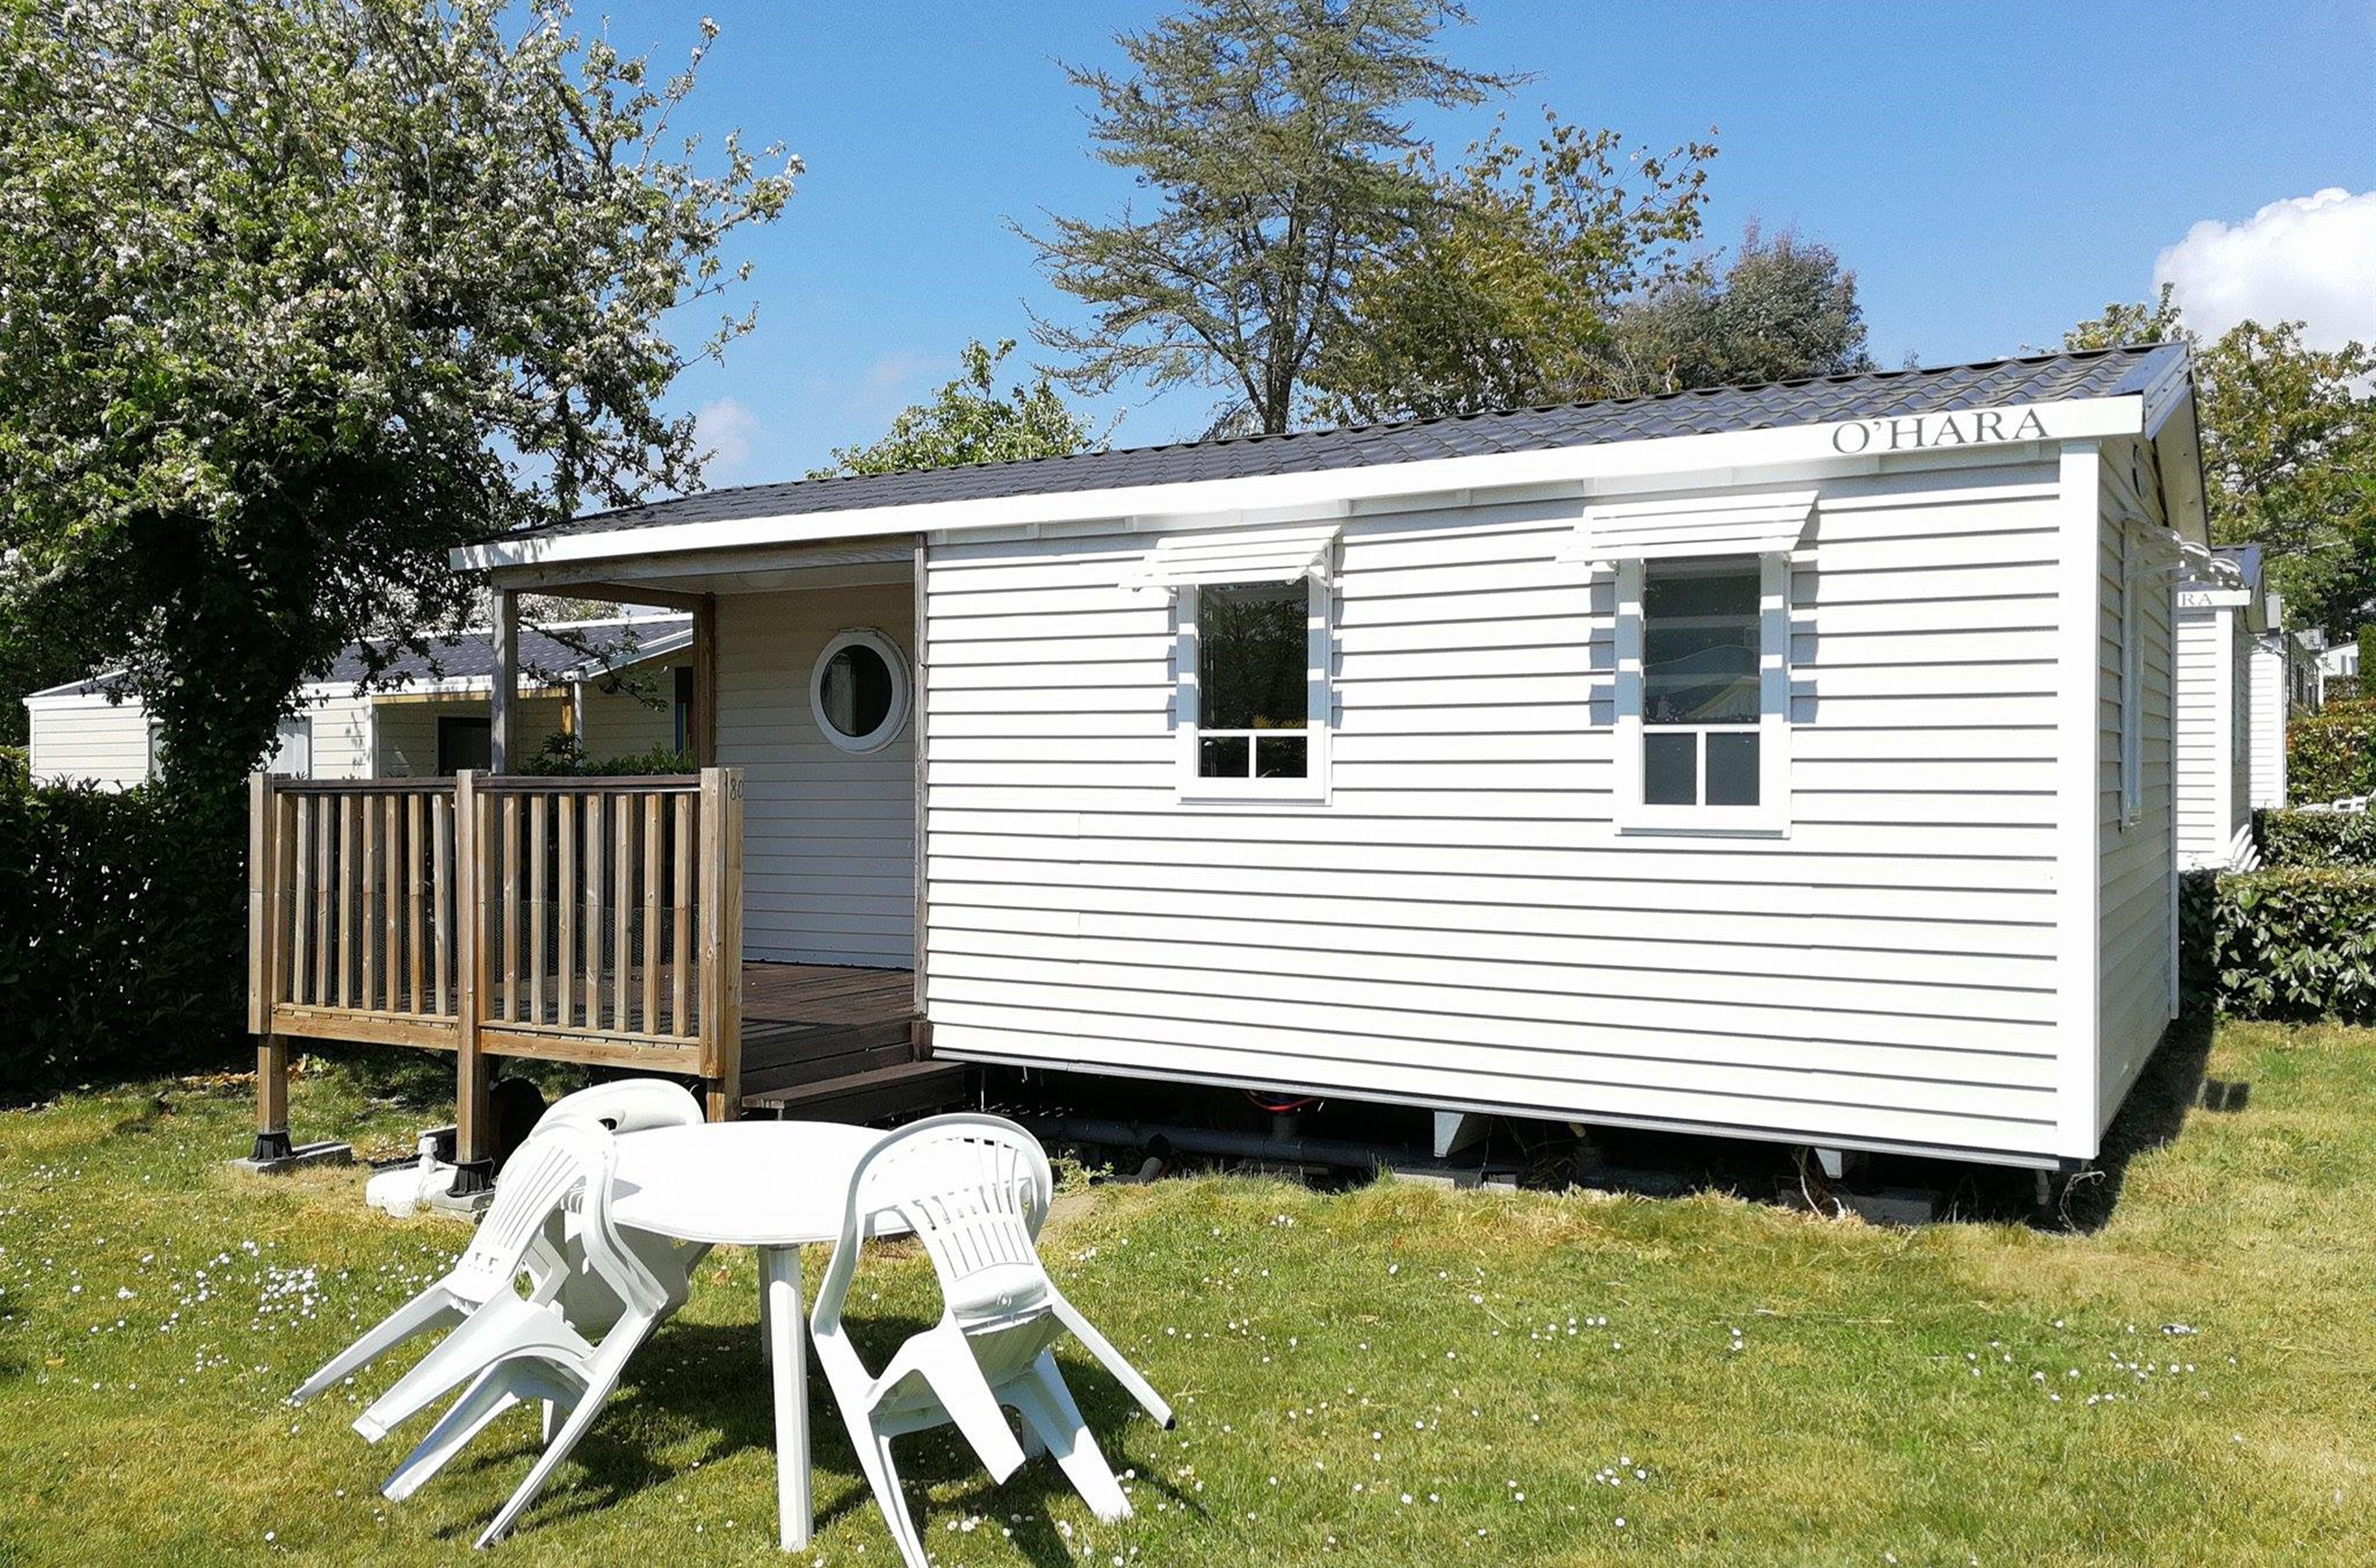 Carte Cezam Location Mobil Home.Mobil Home 4 Personnes 2 Chambres Terrasse Camping Benodet